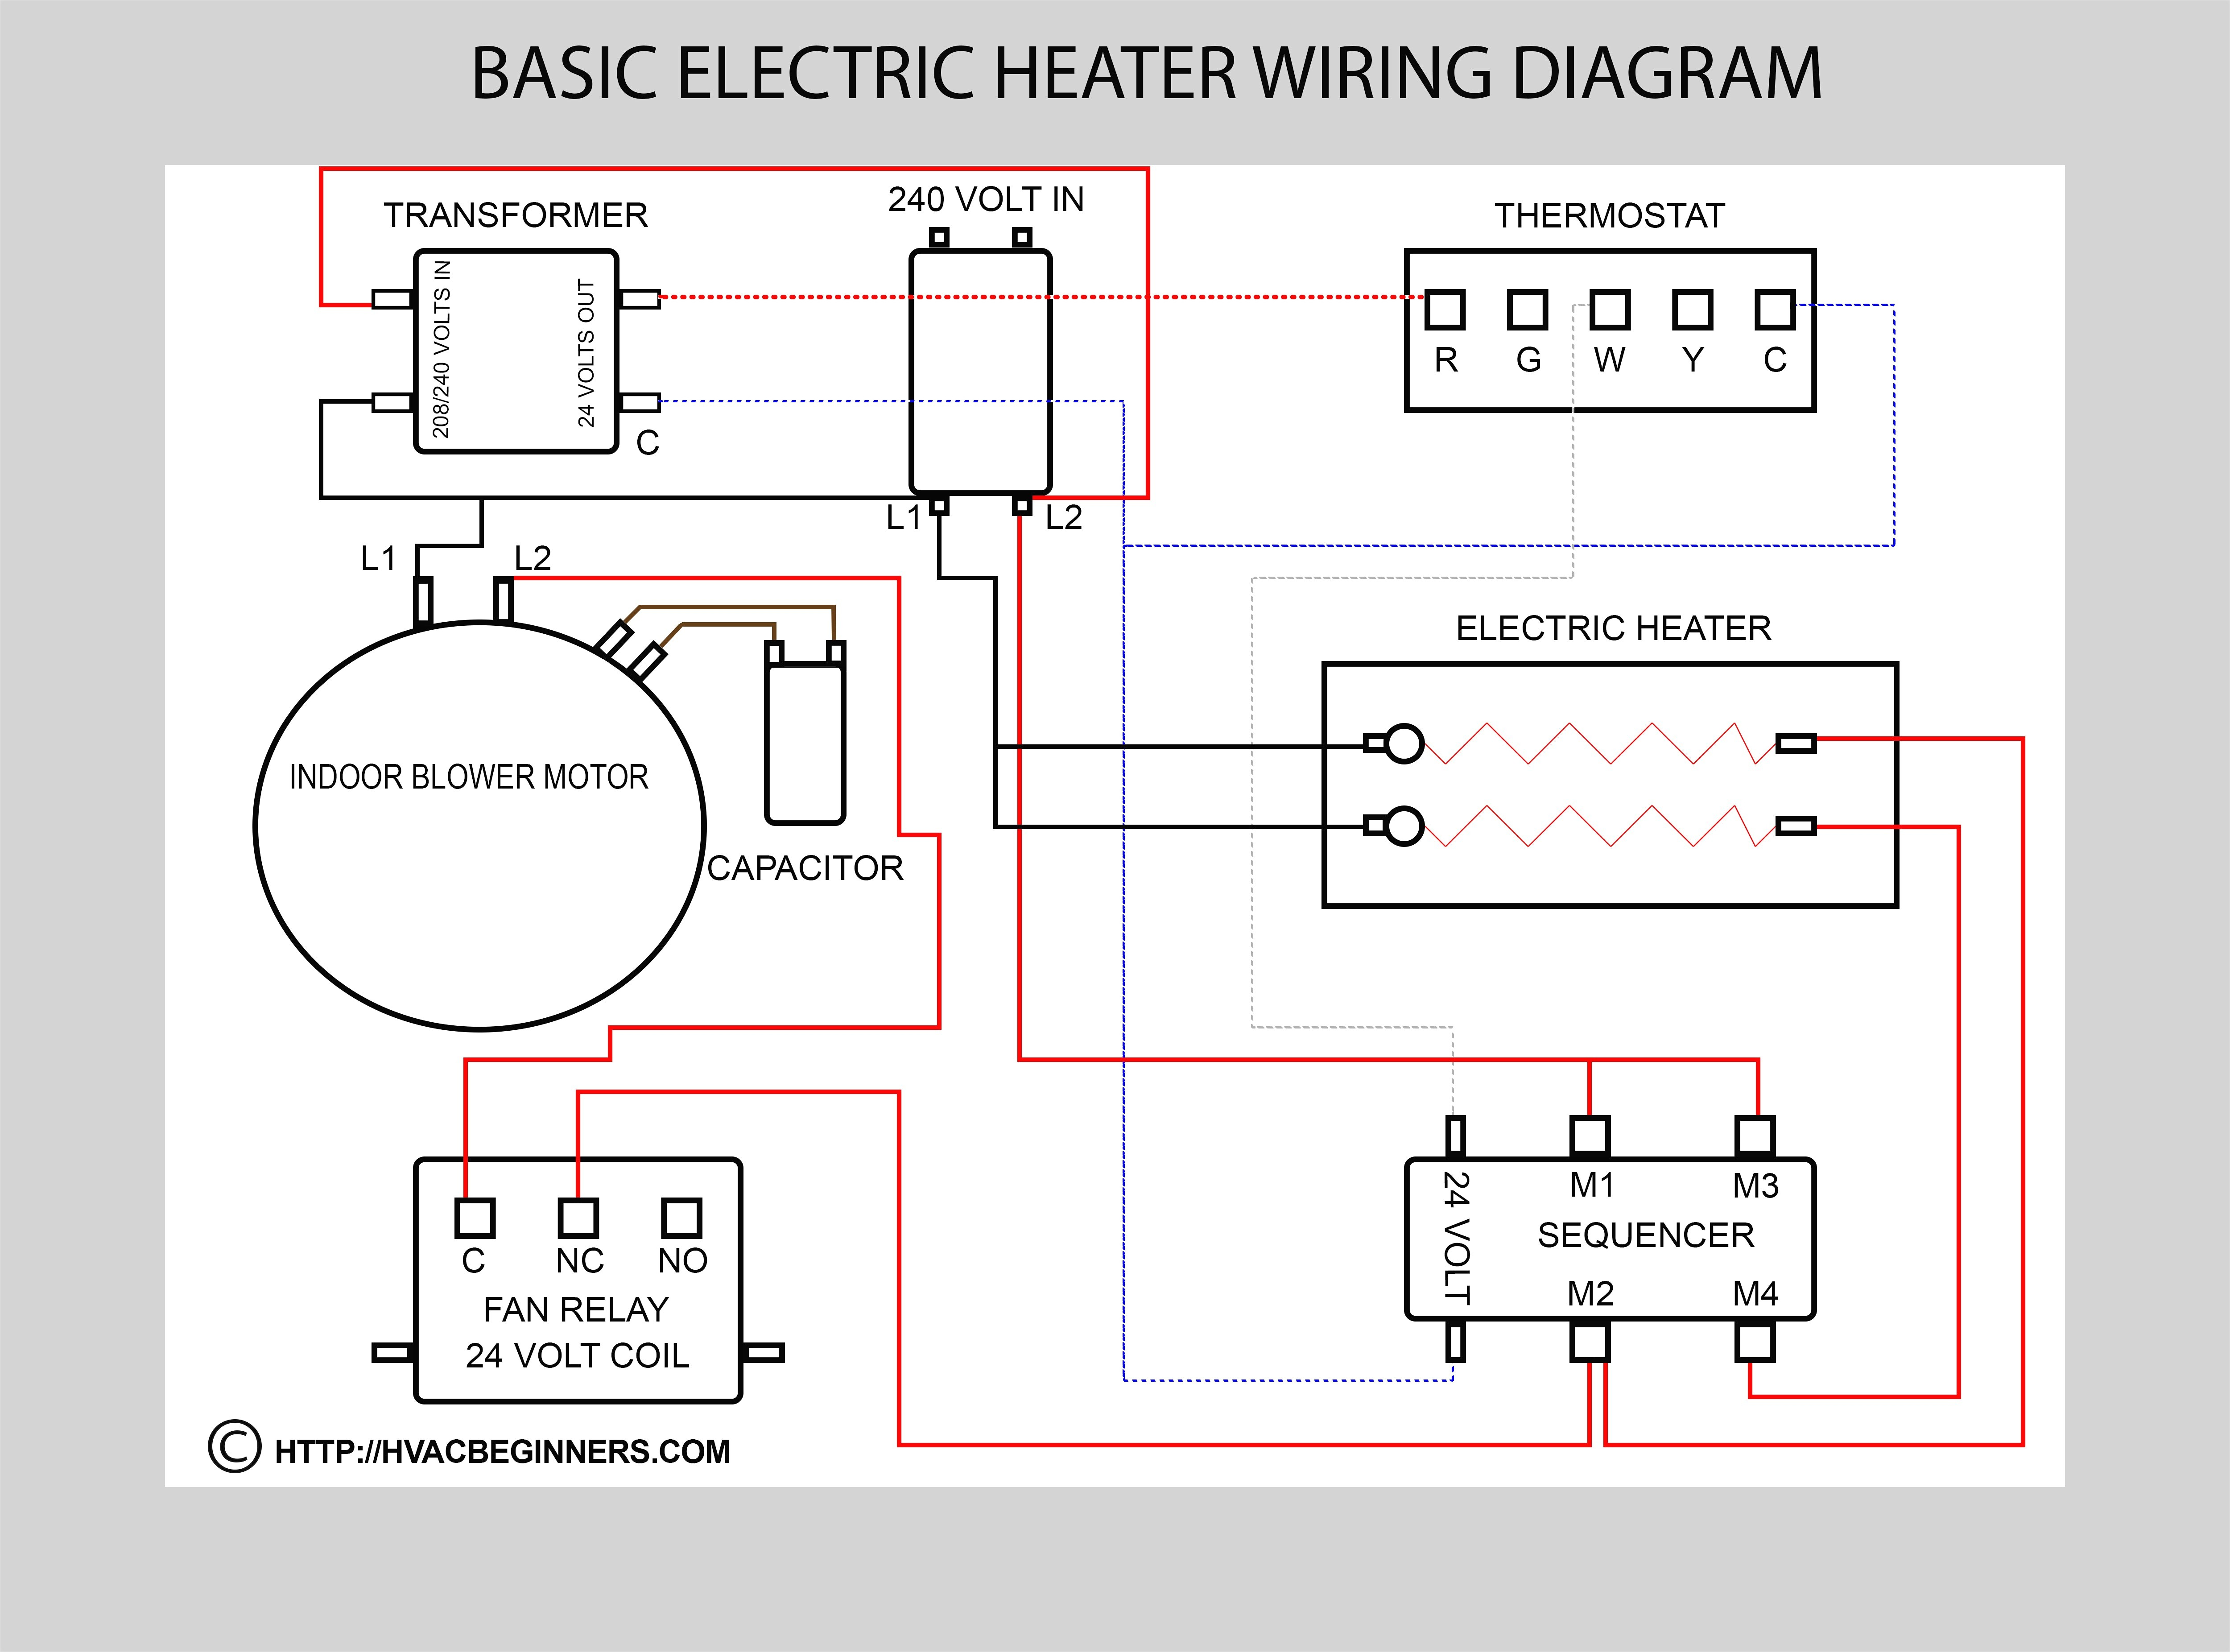 WRG-2262] Dual Voltage Transformer Wiring Diagram on